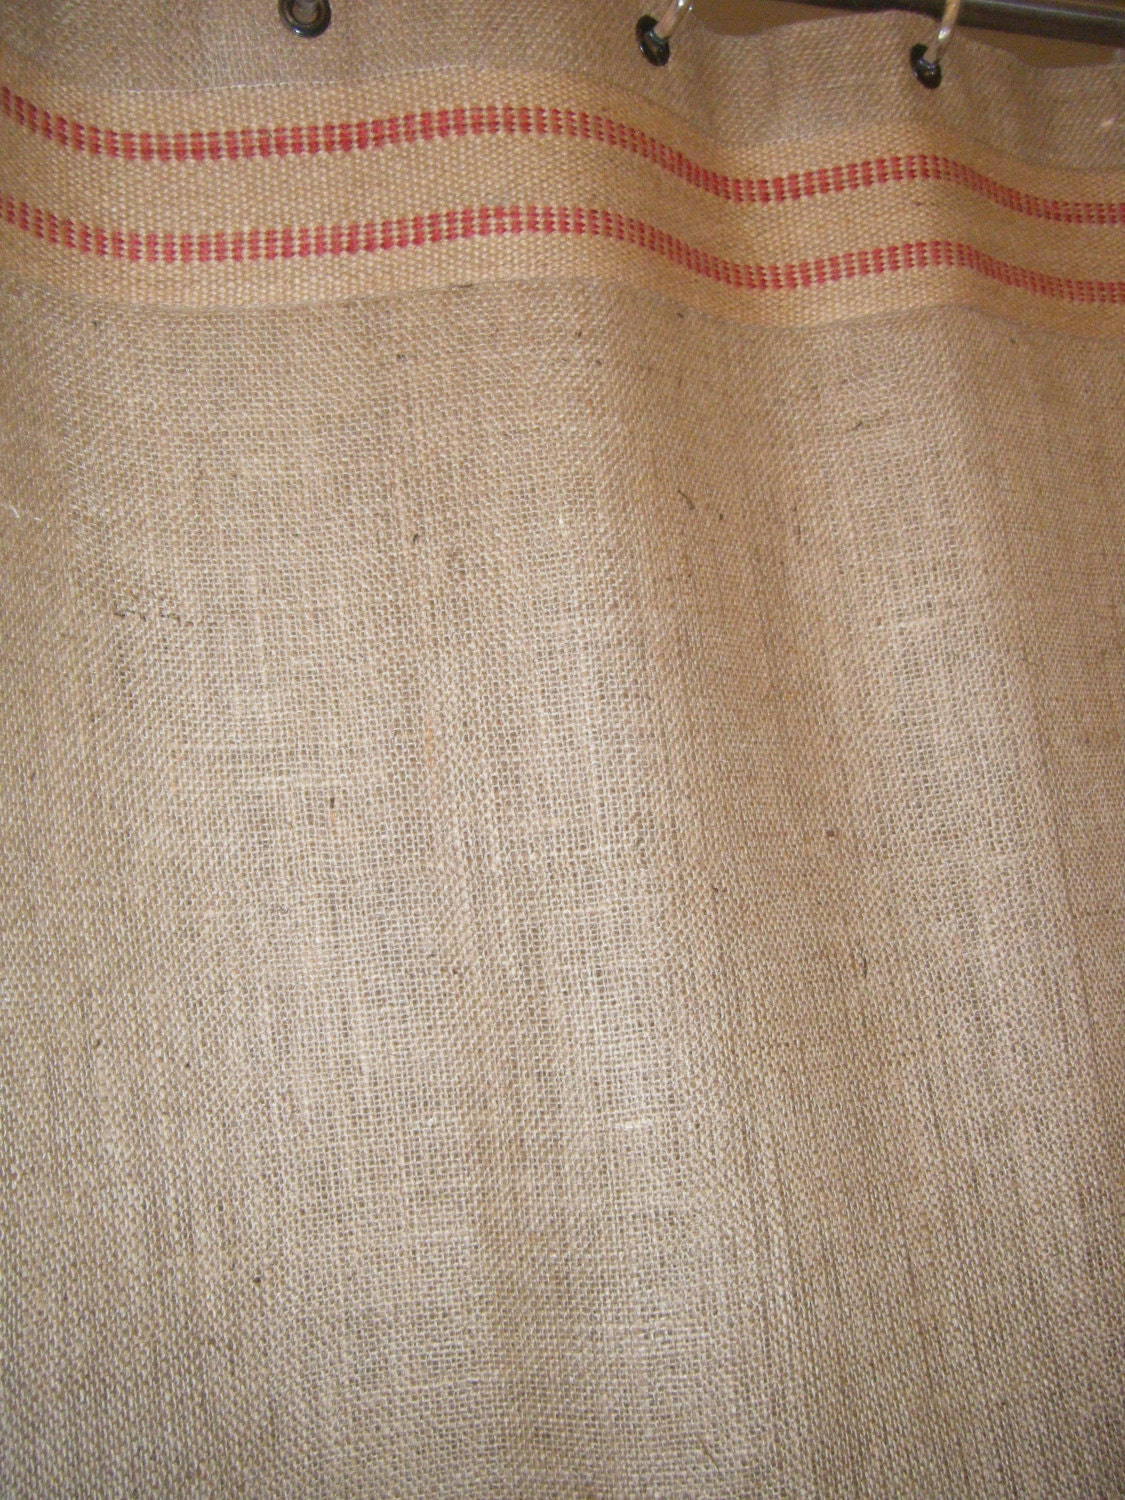 Burlap Shower Stall Curtain 37 Wide X 72 Long